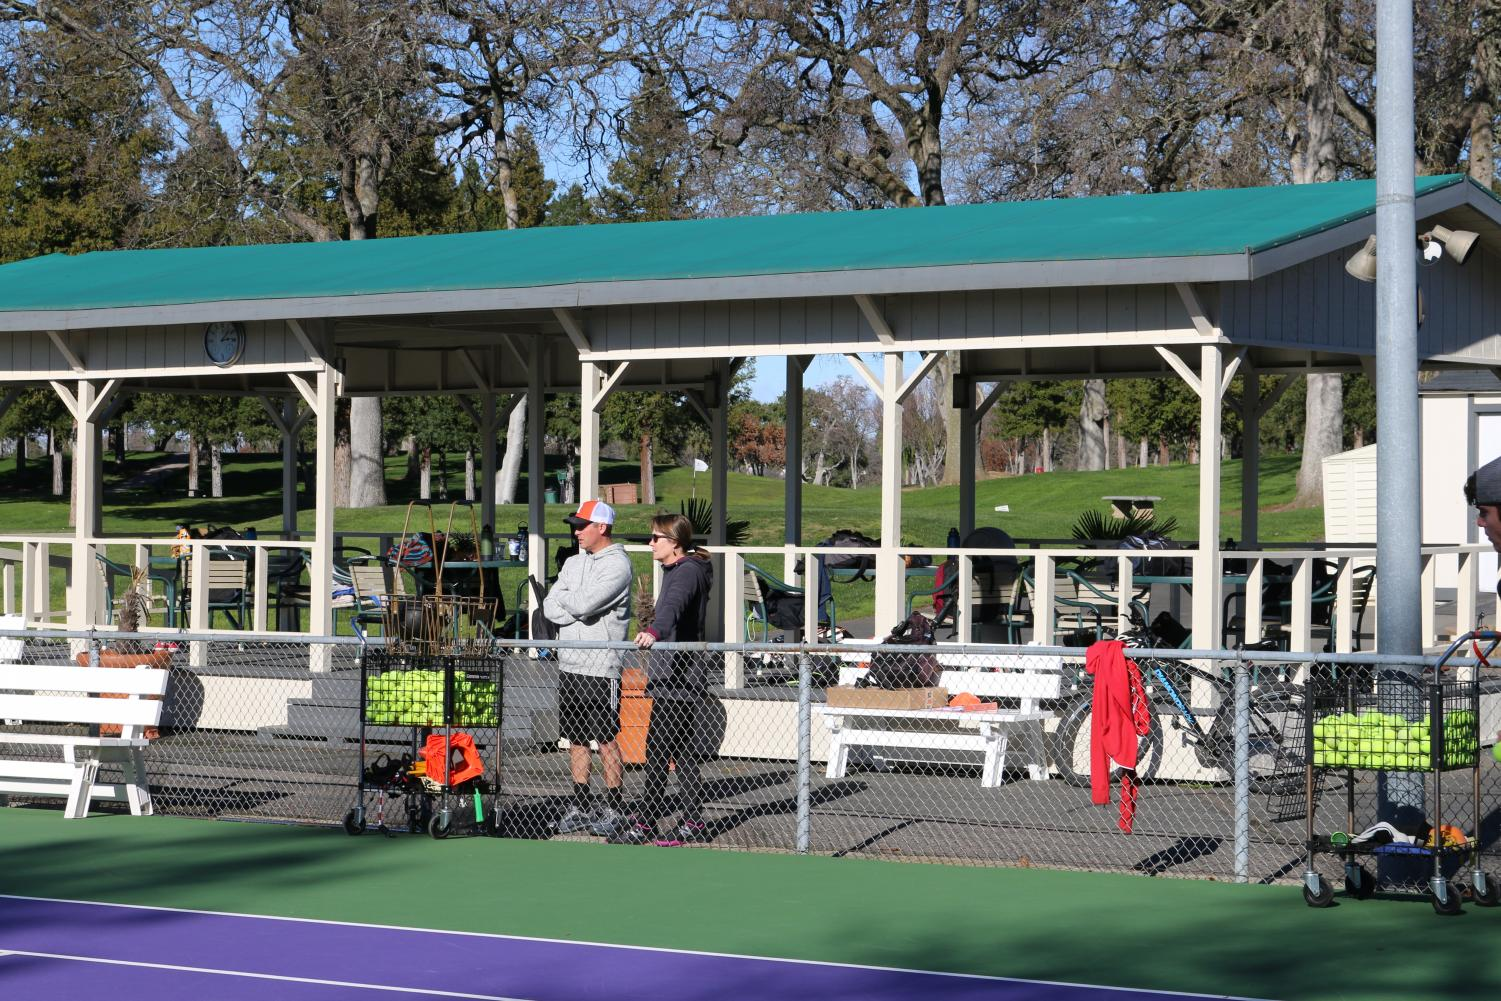 New tennis coaches Michael Cerecedes and Teri Lacey recently took over RHS's varsity tennis team, both now coaching their sons on the team.